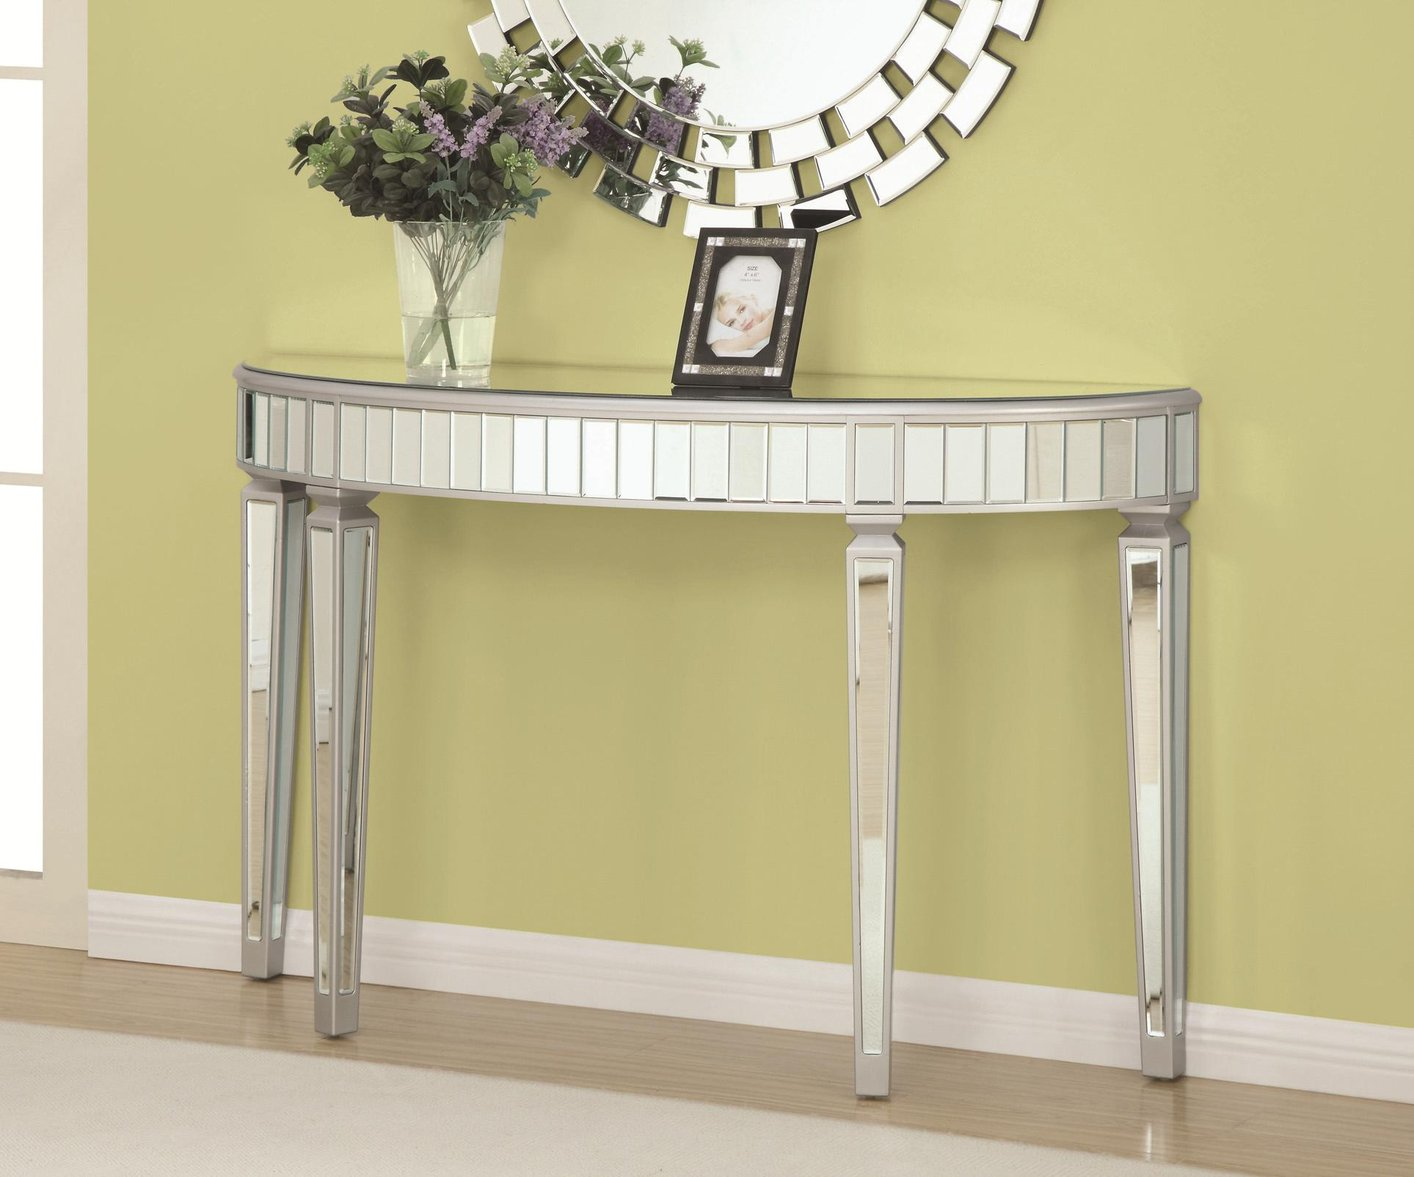 Coaster 950183 Silver Glass Console Table Steal A Sofa  : silver glass console table 8 from www.stealasofa.com size 1414 x 1177 jpeg 157kB